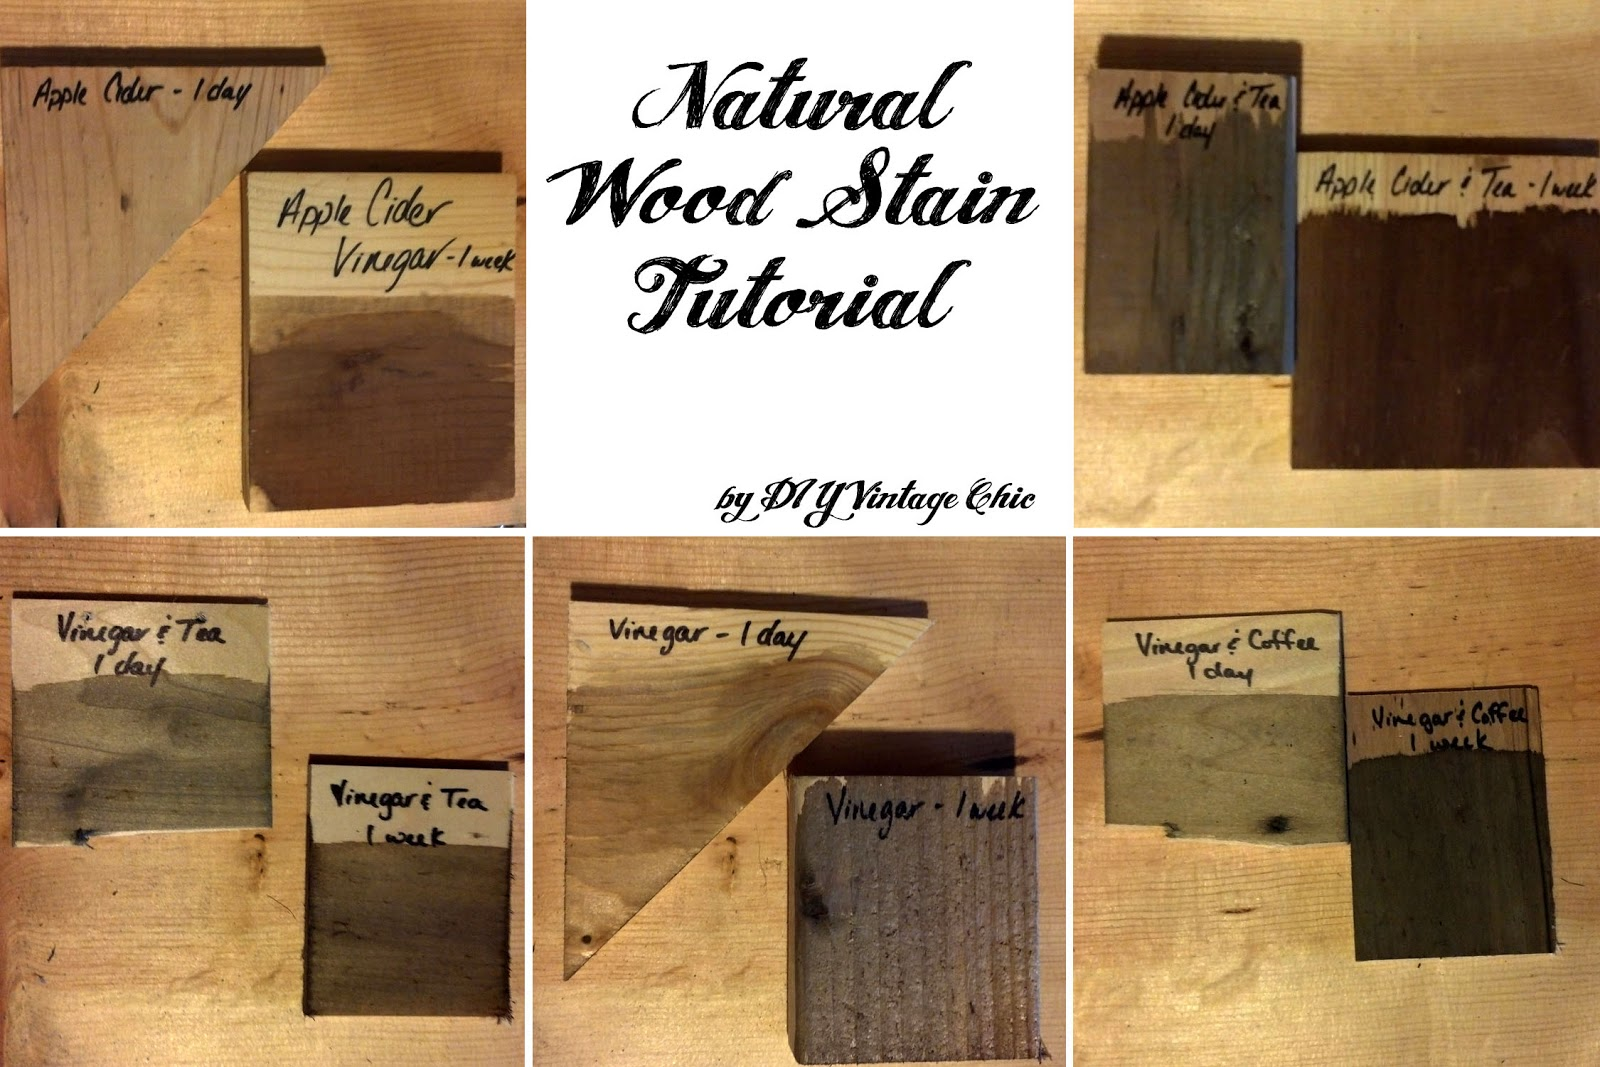 Diy Vintage Chic Natural Wood Stain Tutorial